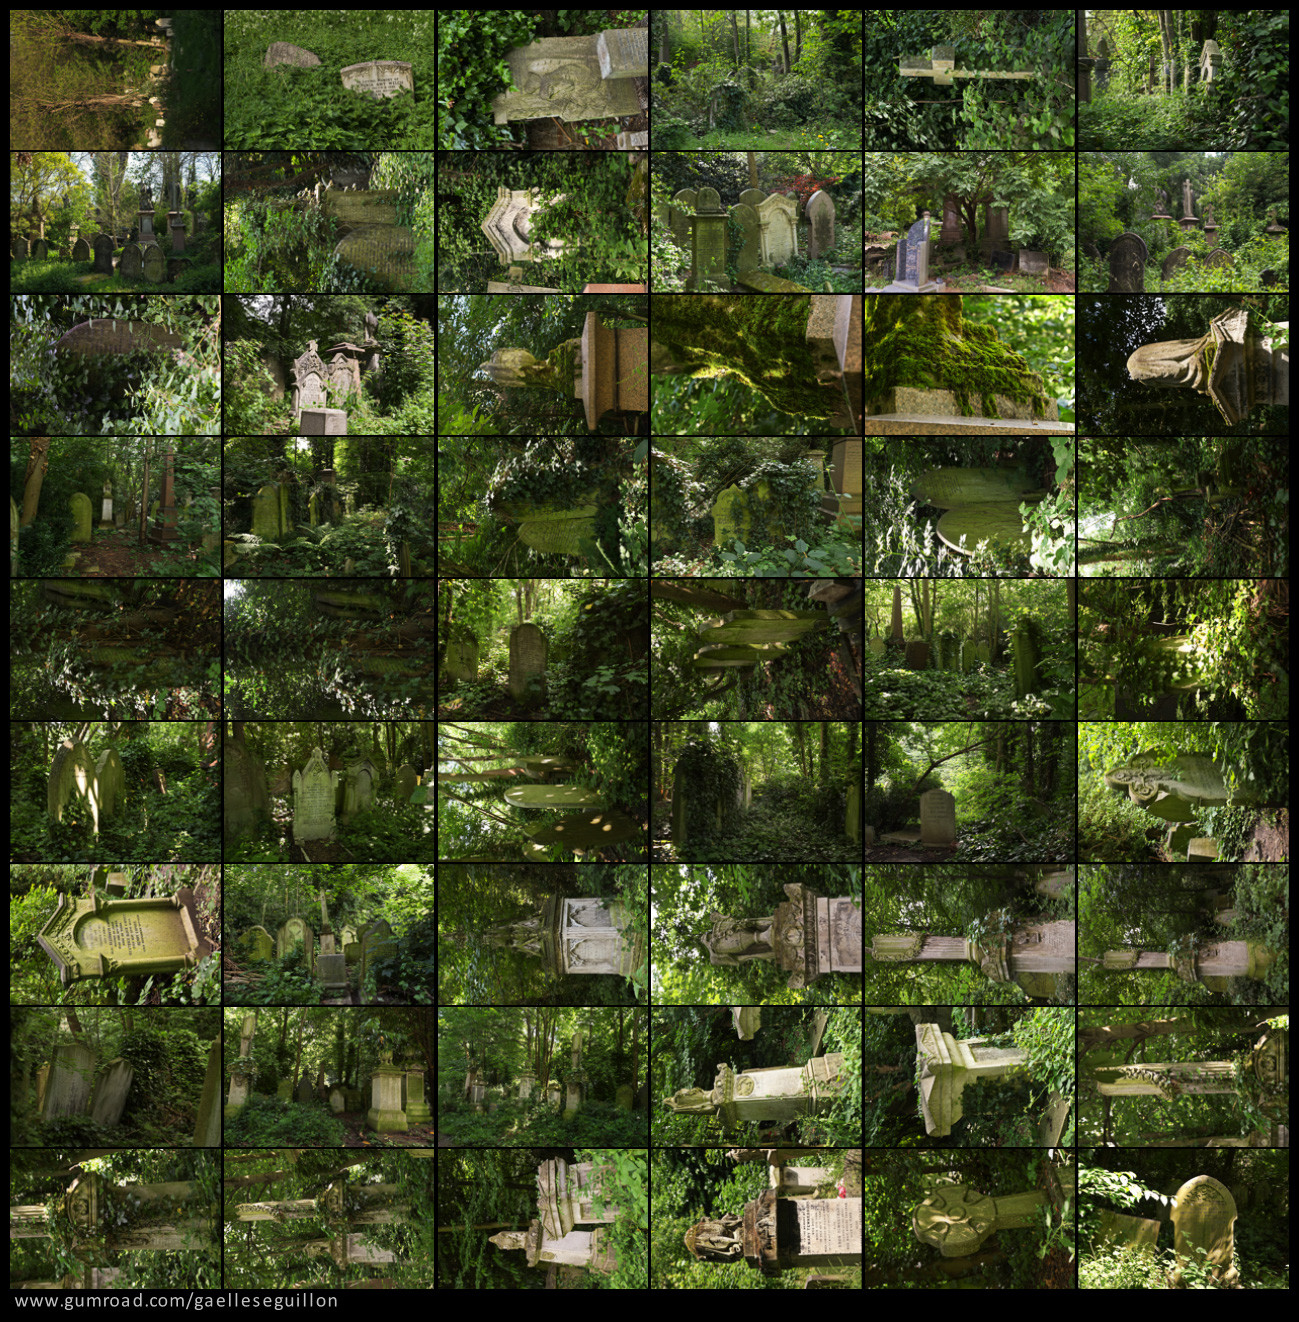 Overgrown cemetery preview.jpg 4